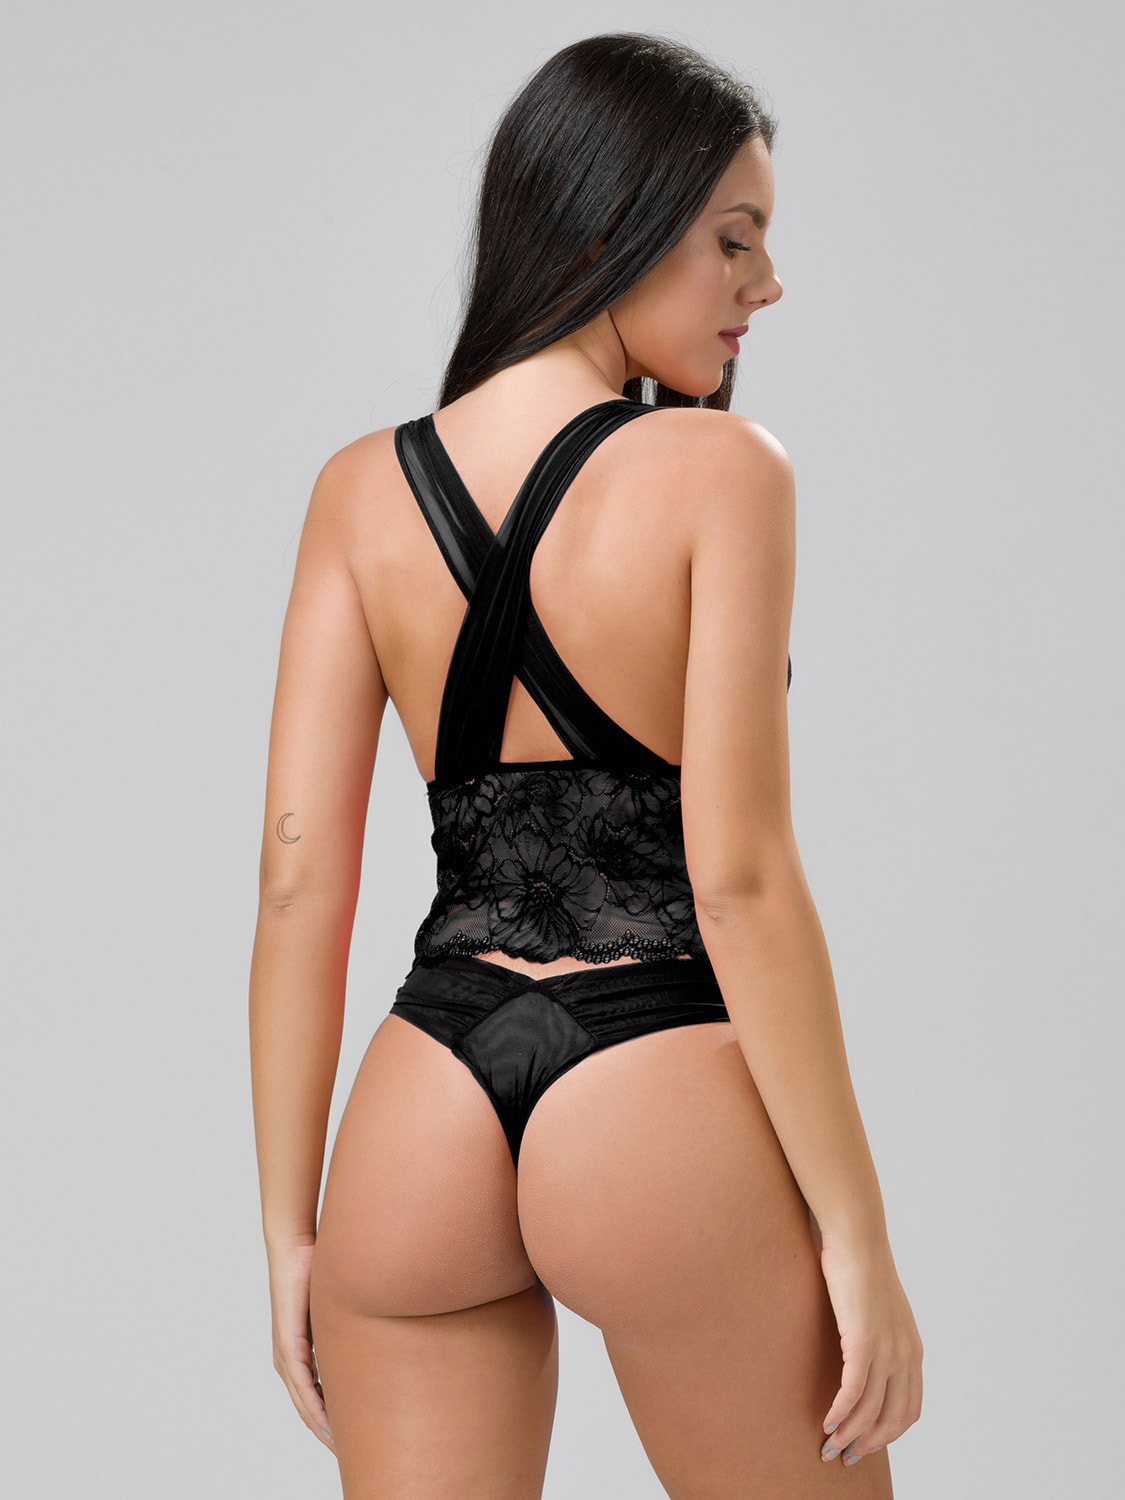 Chicago 14145 bralette & 24146 string black back (1)